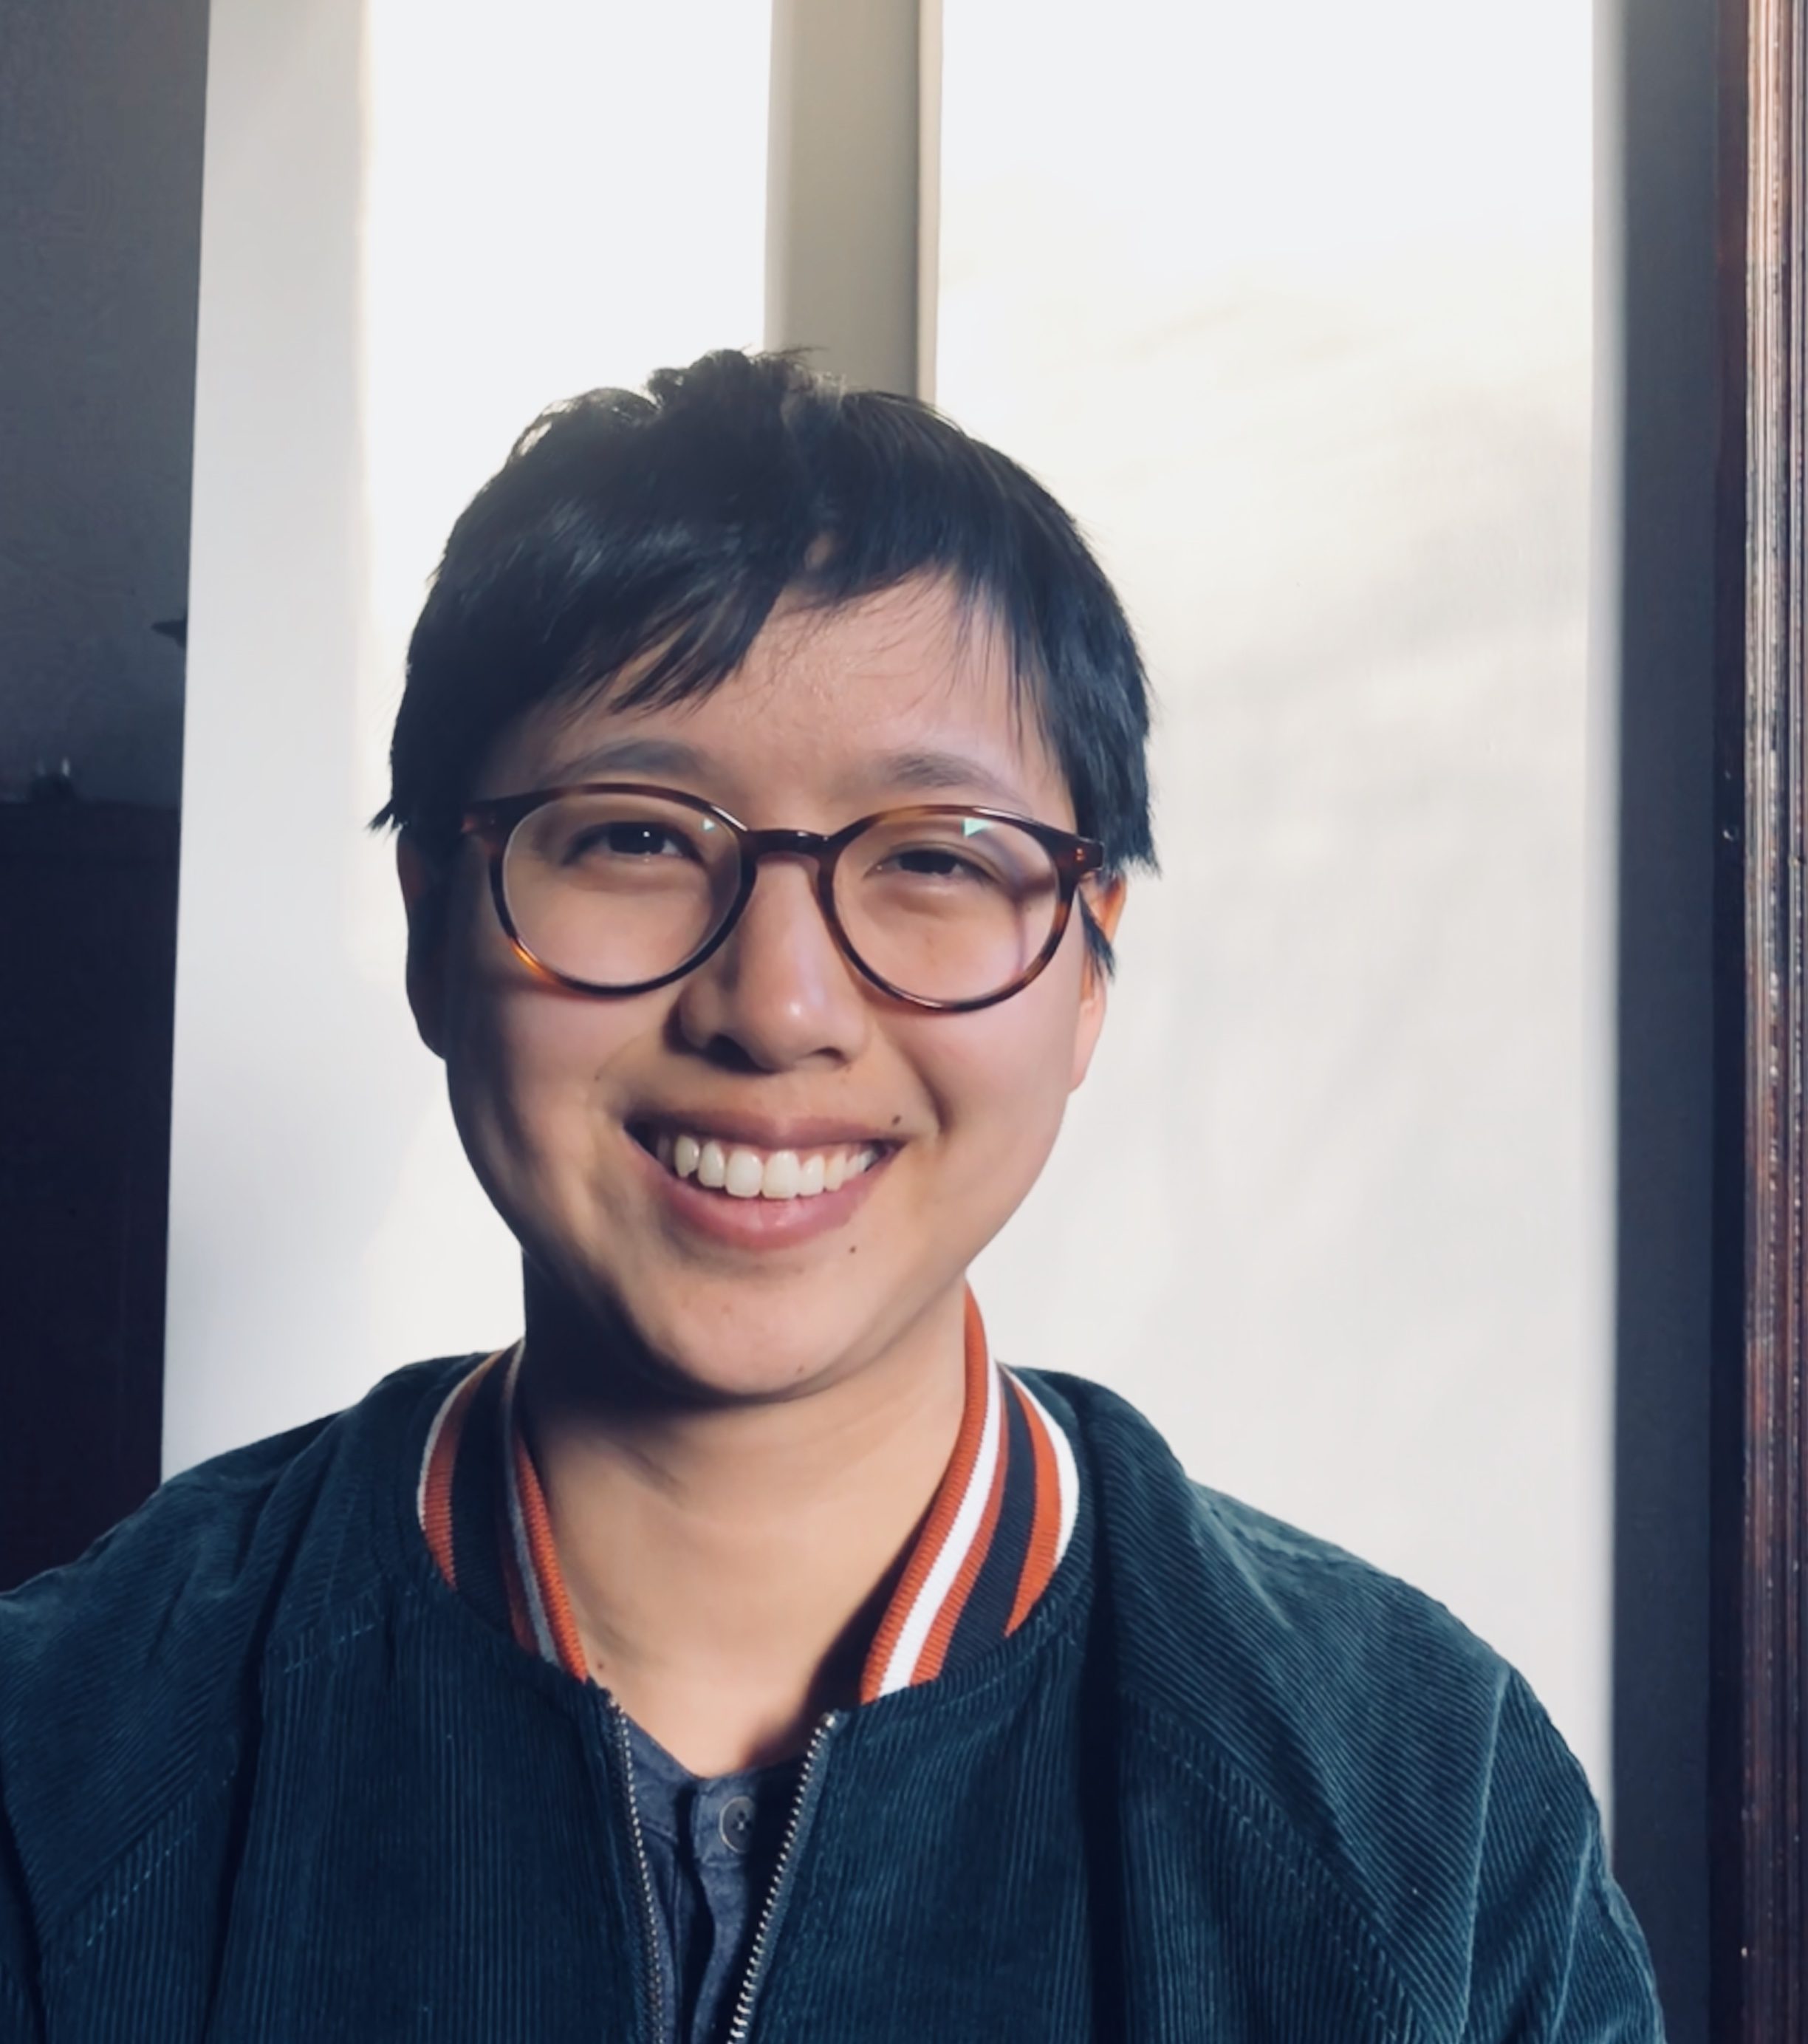 Sarah Ngu - I was born in Borneo, Malaysia. My Malaysian Chinese family moved to the United States when I was 10 years old. I graduated from Columbia University and now live in Brooklyn. I attend Forefront Brooklyn Church.I'm a cofounder of ChurchClarity, a database that aims to elevate the standard of transparency and clarity for policies that impact LGBTQ people and Women in Leadership within the church economy.I also host the Religion & Socialism podcast, which is produced by Devin Briski and is hosted by the Democratic Socialists of America' Religion and Socialism working group.I occasionally work as a ghostwriter as well.All pronouns (they/she/he) are okay.